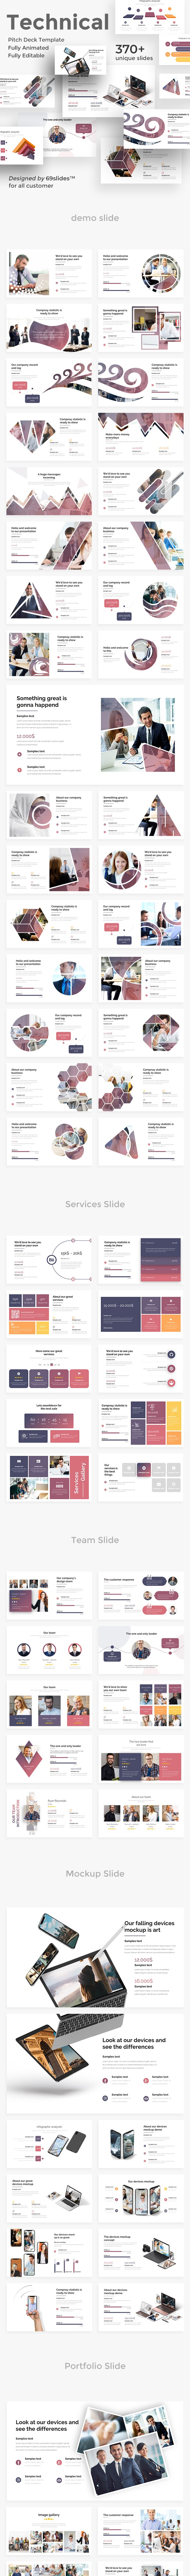 Technical Fully Animated Pitch Deck Powerpoint Template - Business PowerPoint Templates